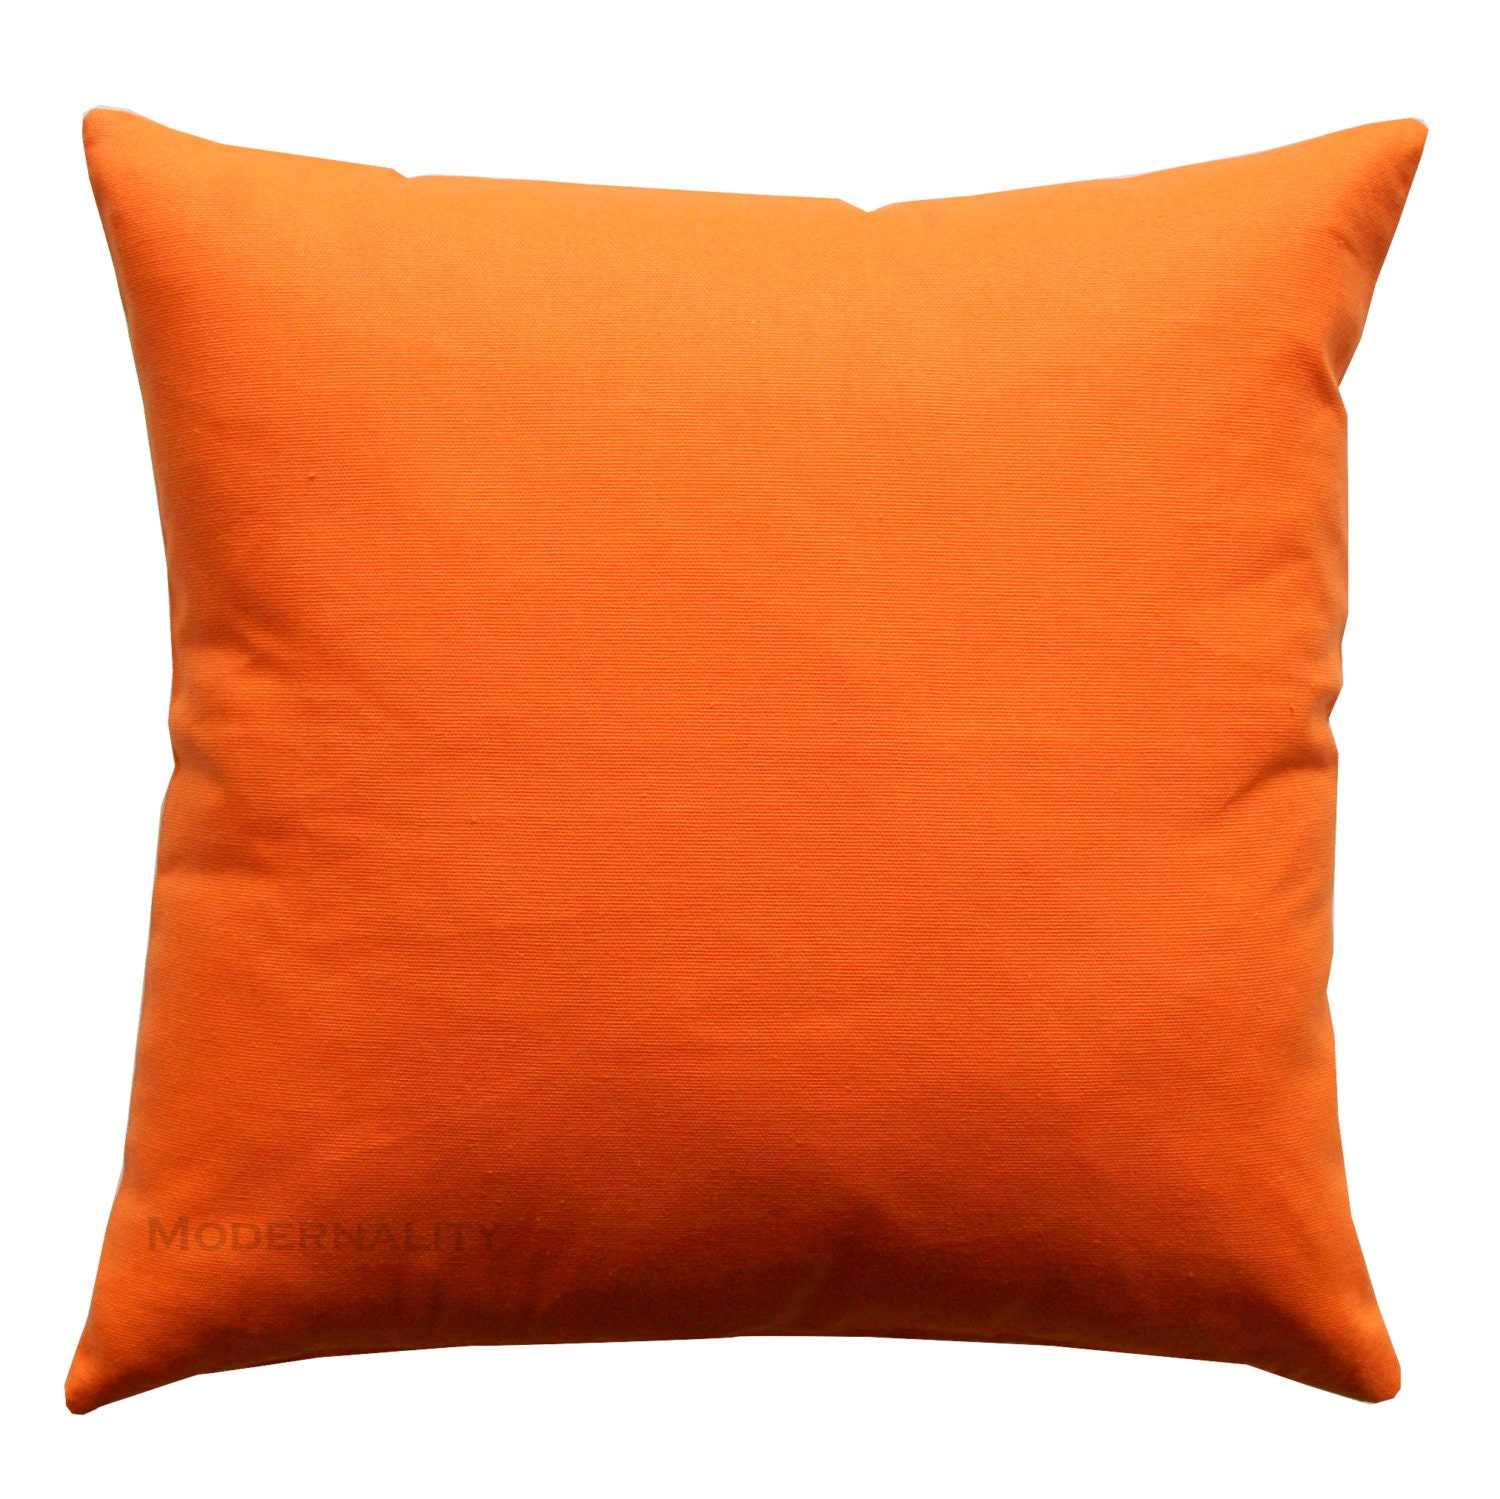 Throw Pillows Solid Mandarin Orange Pillow Cover Solid